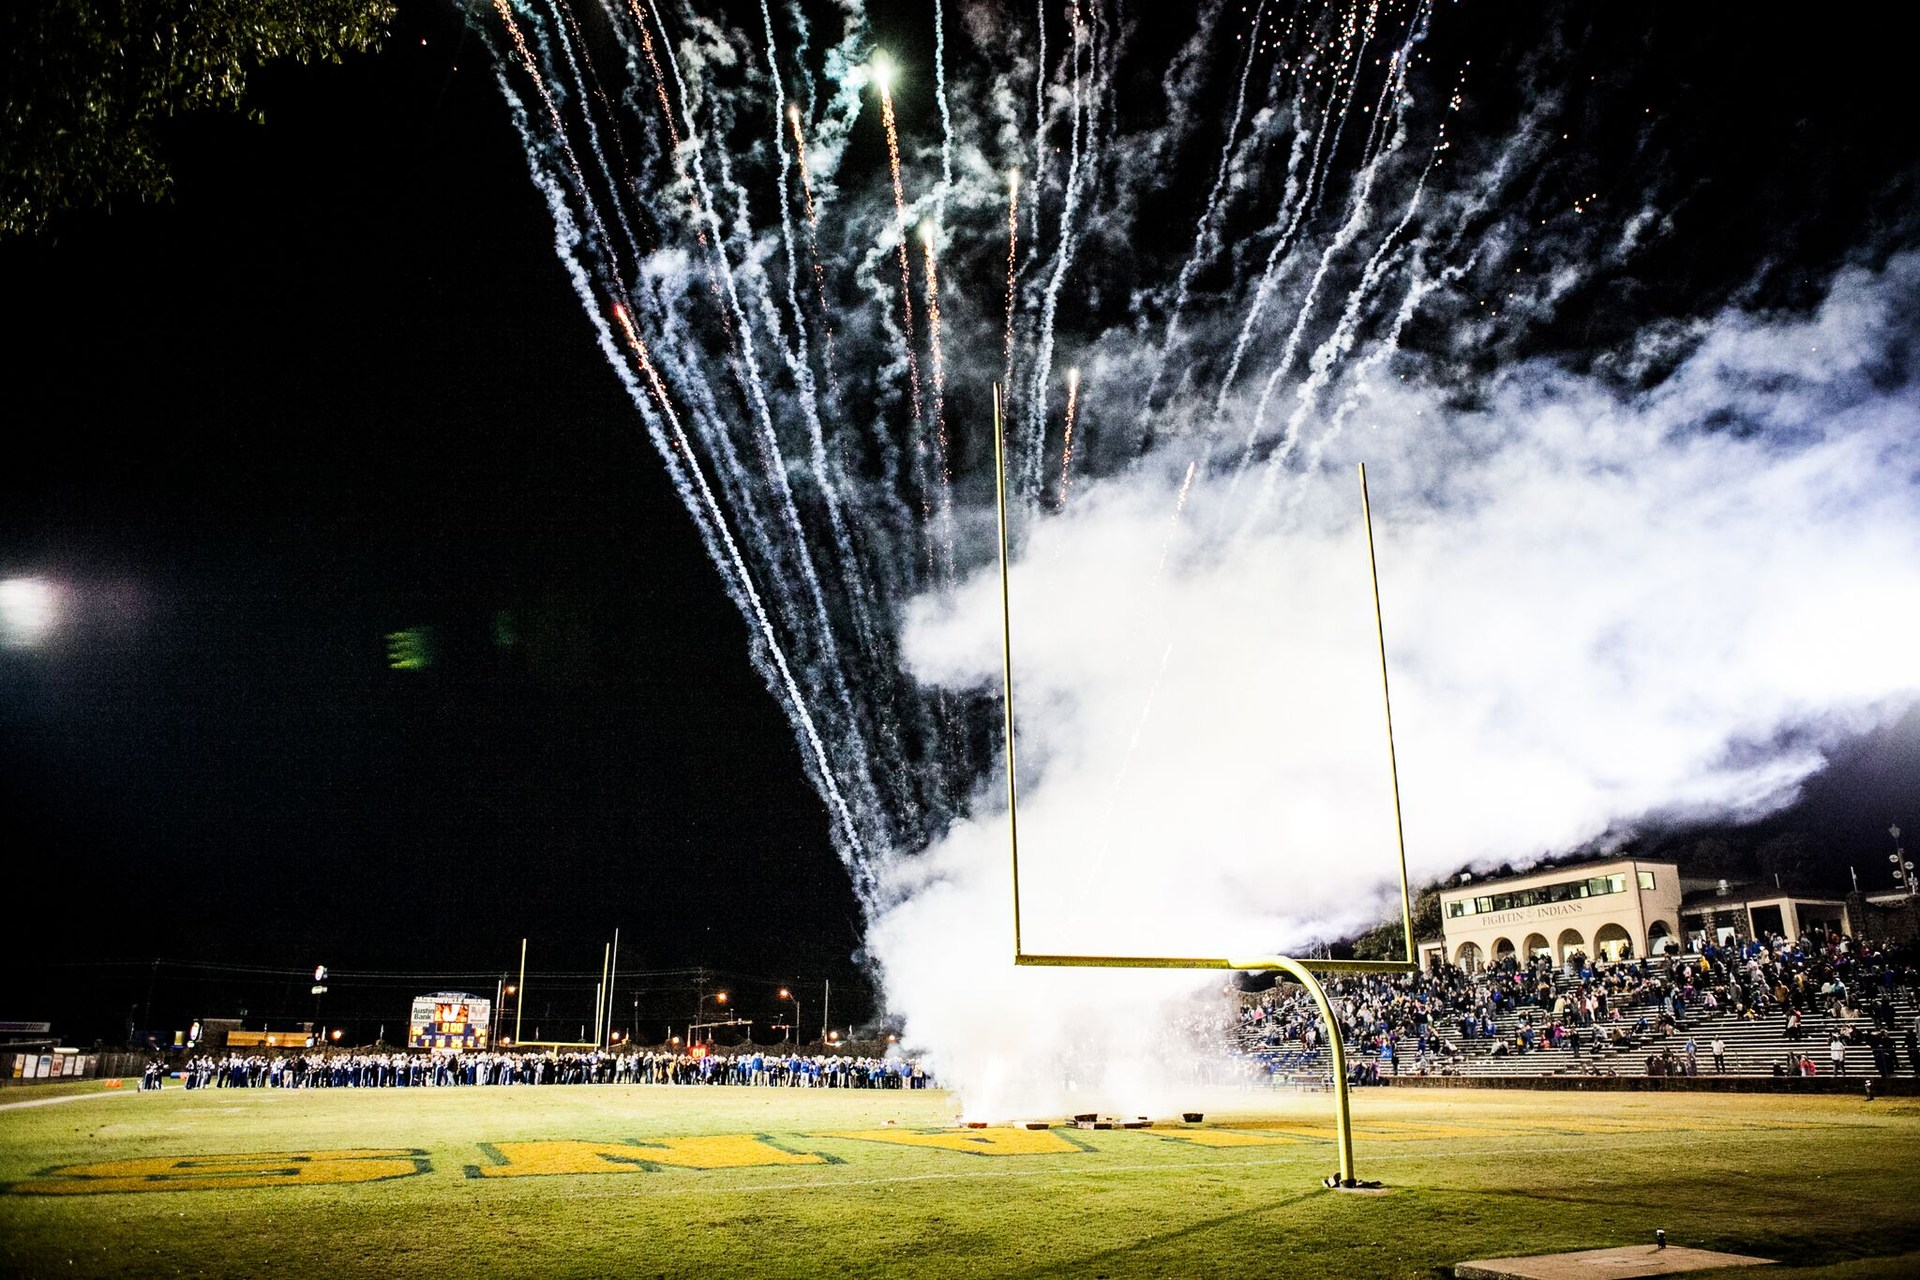 fireworks display on the field